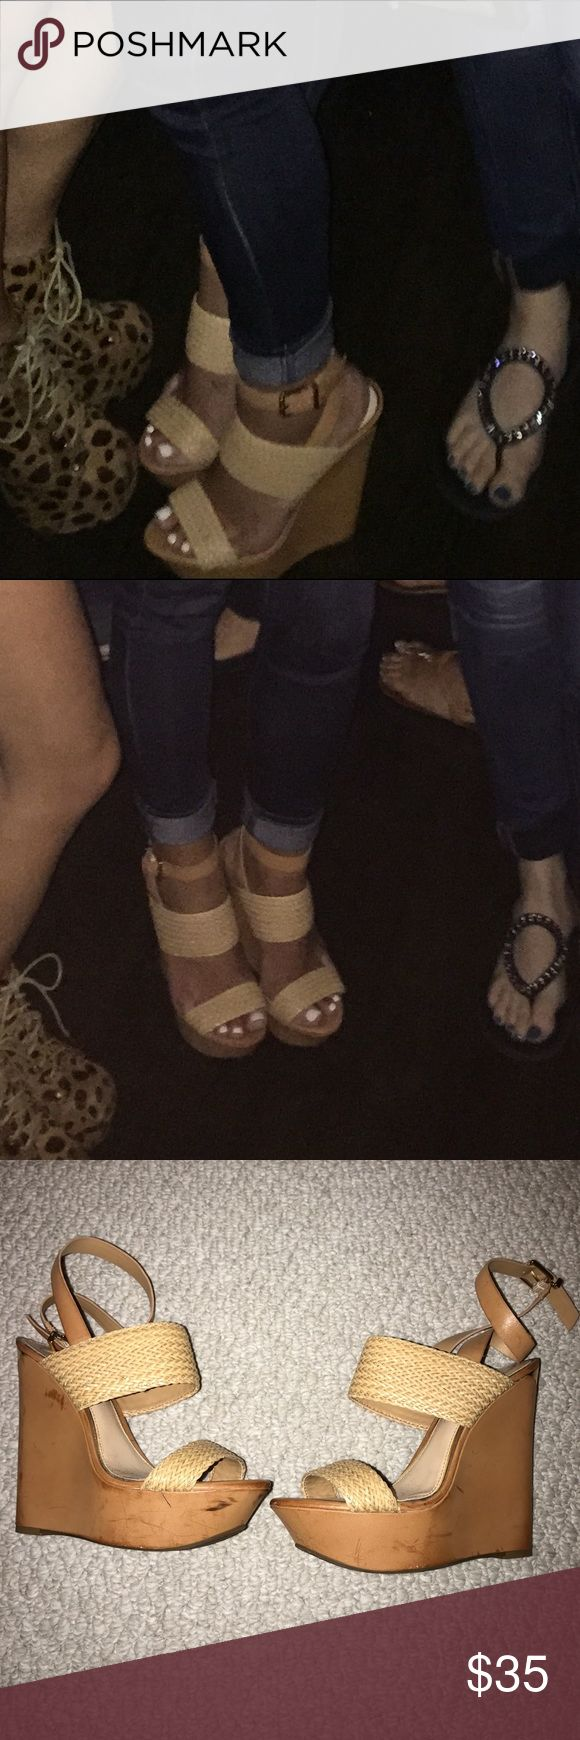 Jessica Simpson wedges Size 8- they are scuffed from wearing but look super cute on! Jessica Simpson Shoes Wedges